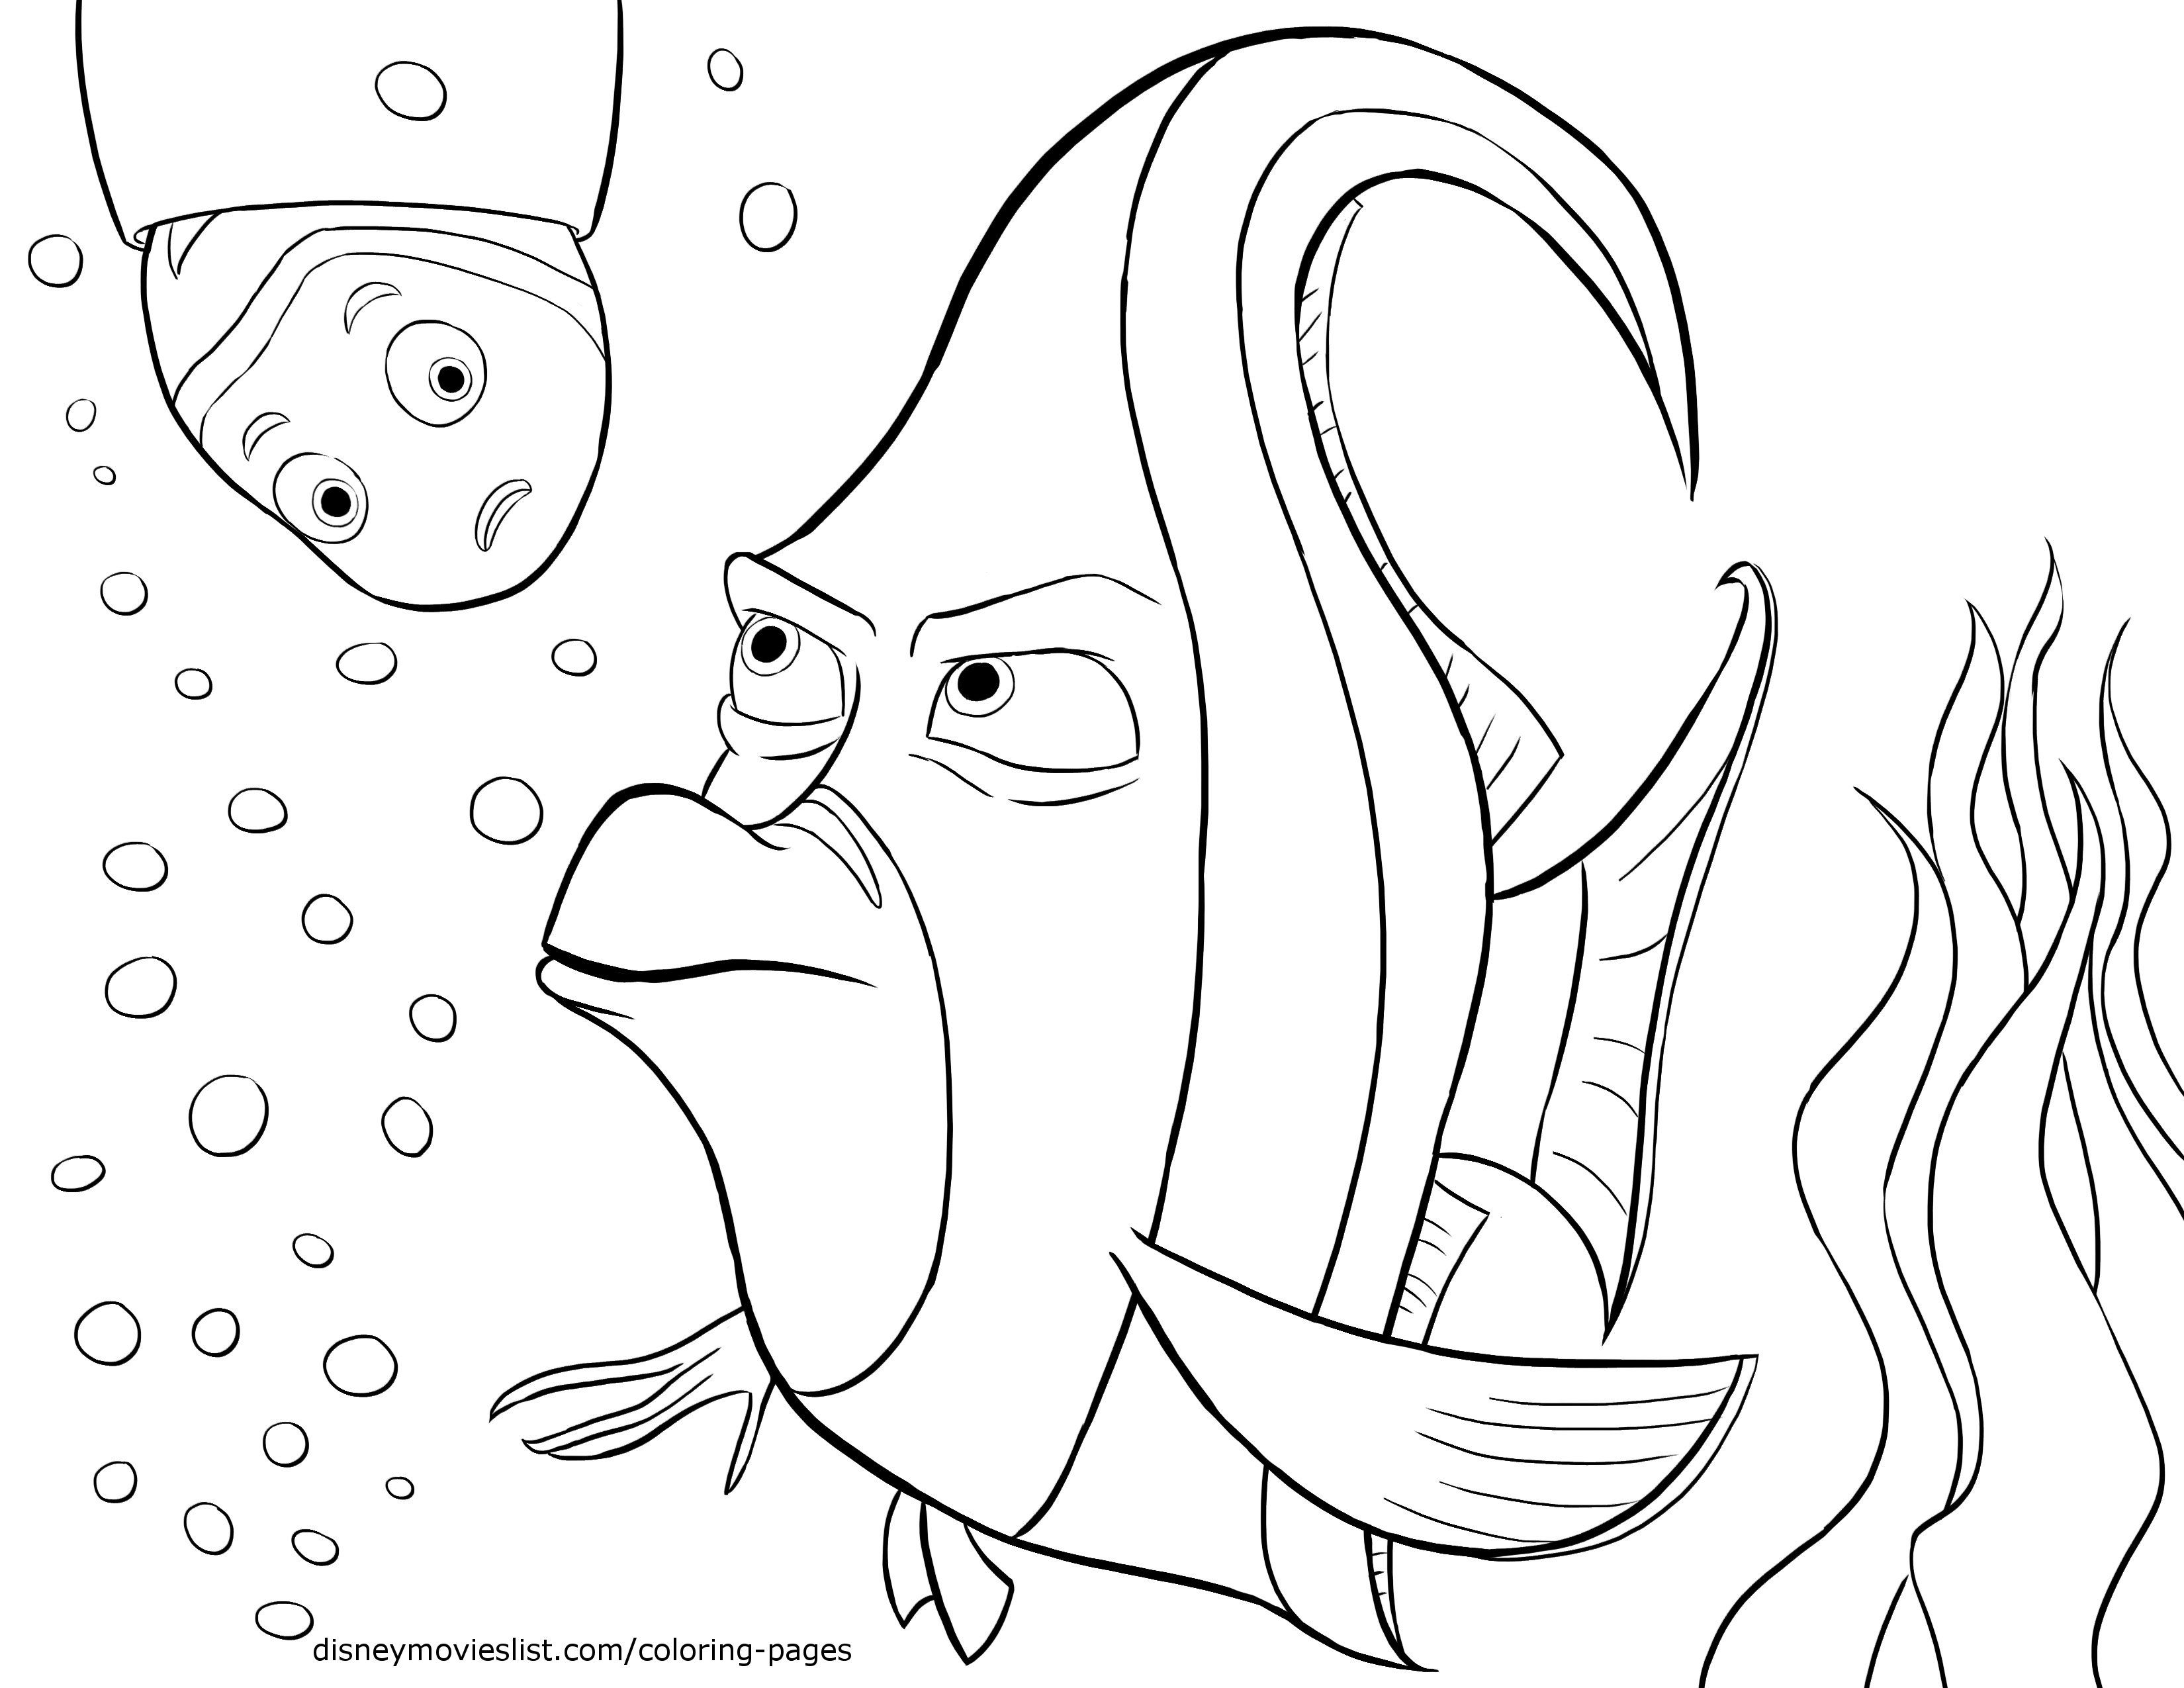 coloring nemo characters download finding nemo coloring pages finding nemo nemo coloring characters